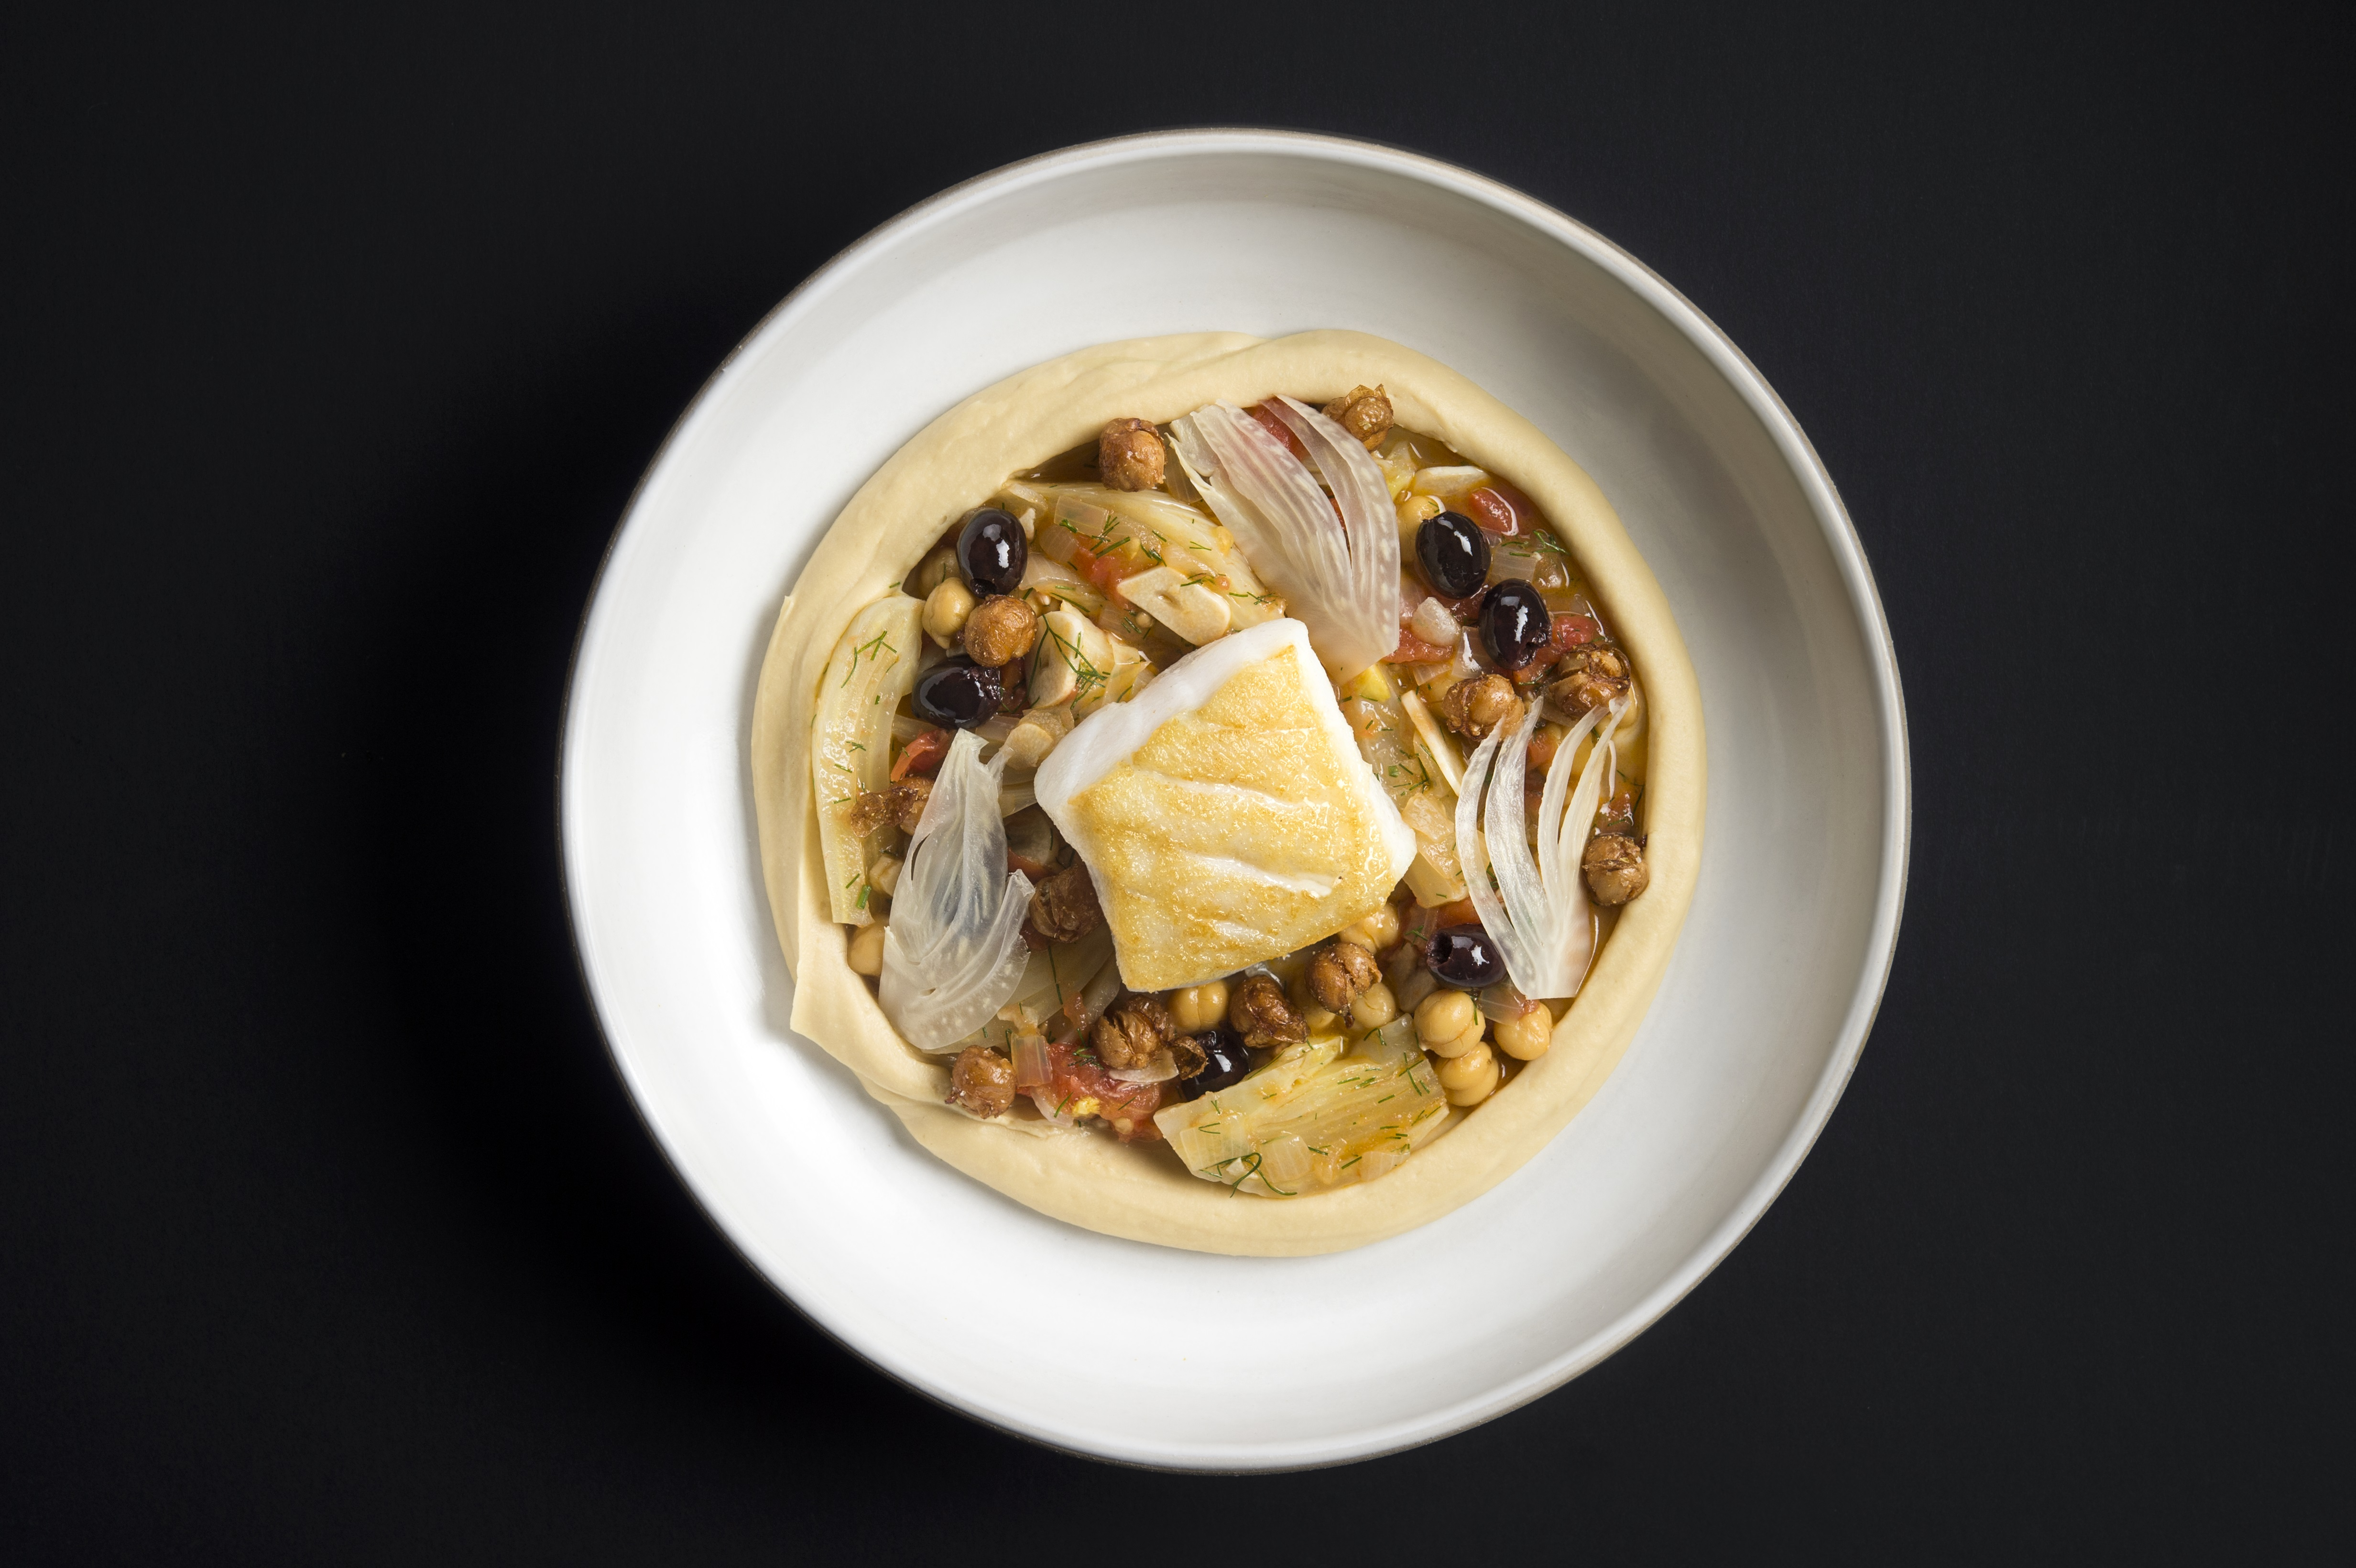 Cod provencal is one of the affordable meals at a new casual restaurant from the chef behind Eleven Madison Park.